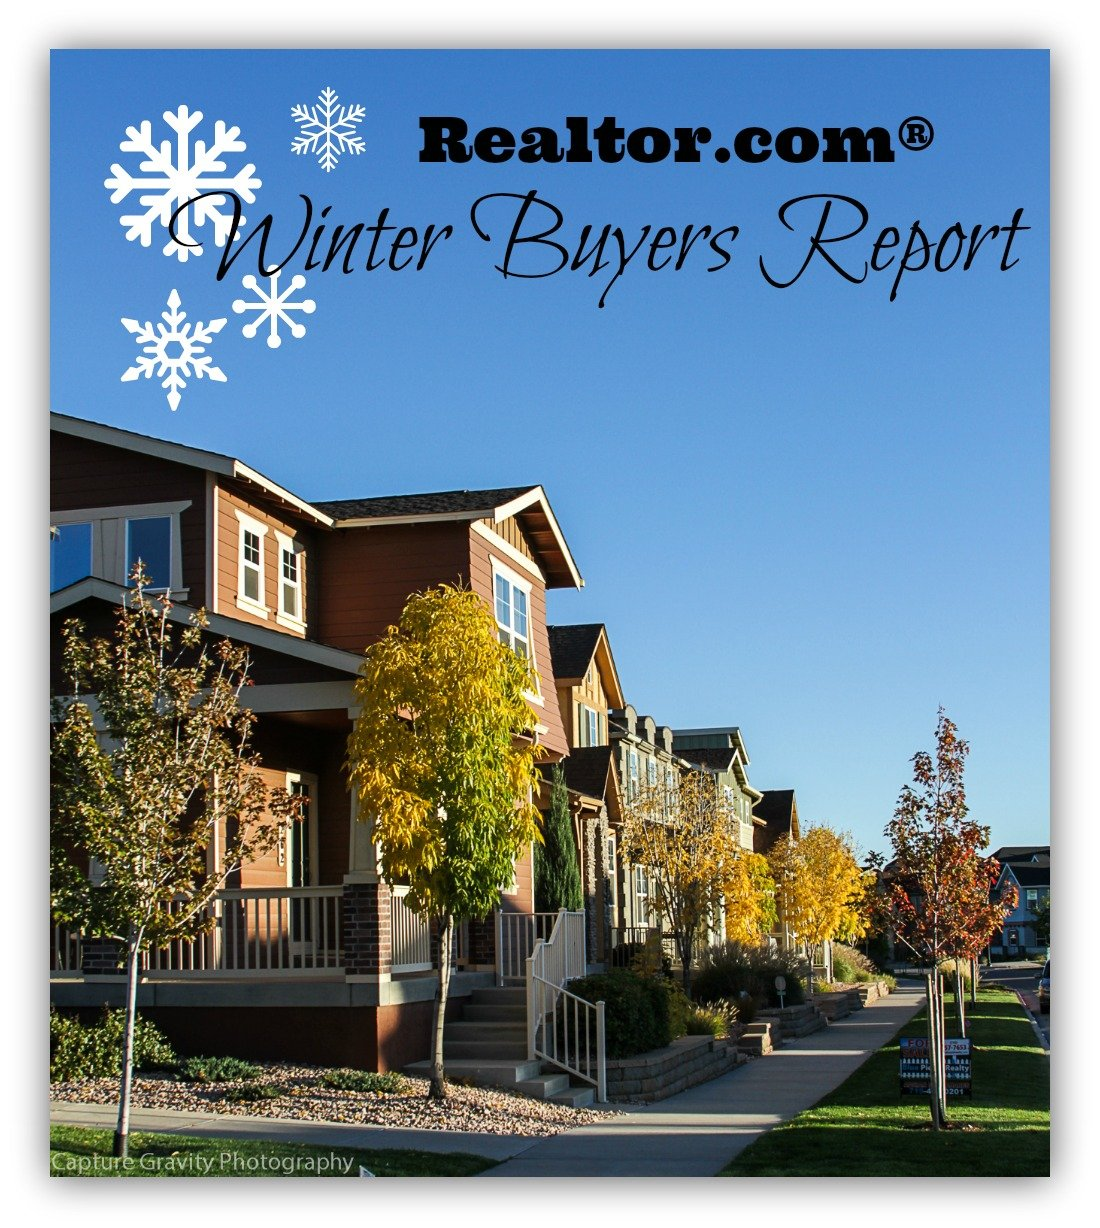 Colorado Springs Or Denver Where Should You Live: Are You Ready To Invest In A Rental Property?